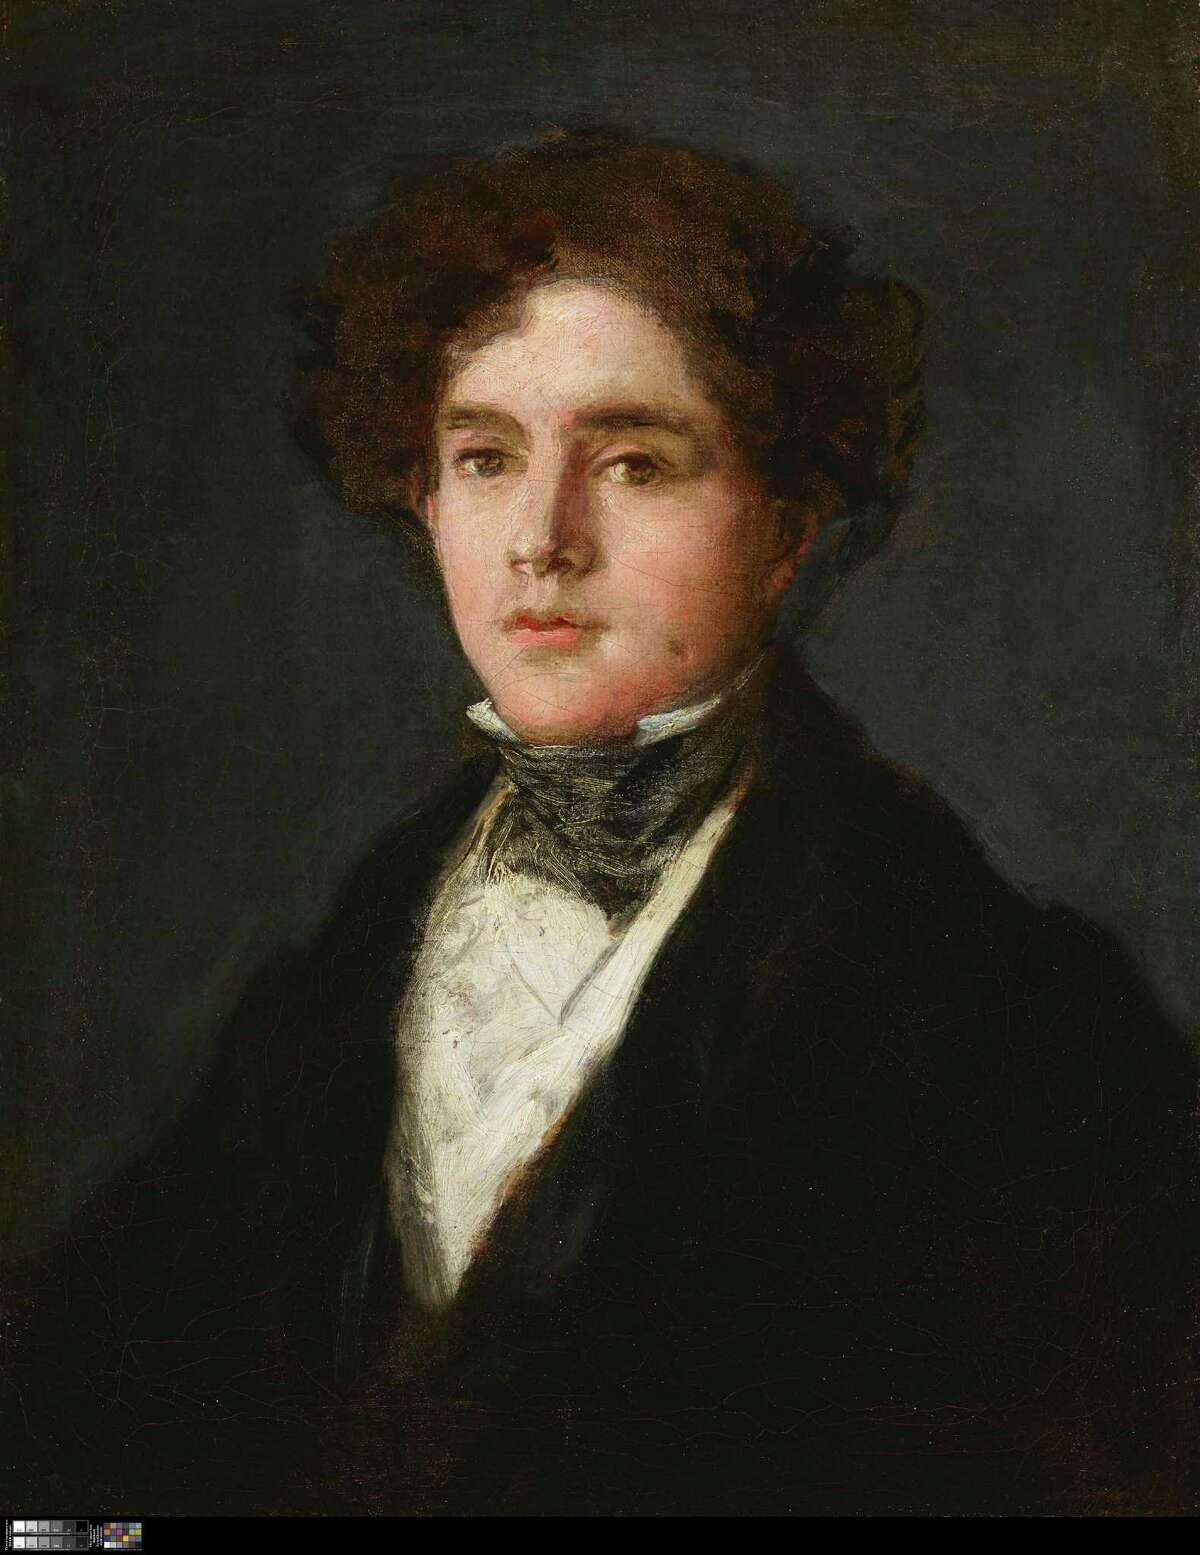 """The Meadows Museum acquired """"Portrait of Mariano Goya, the Artist's Grandson,"""" by Francisco José de Goya y Lucientes, last fall."""